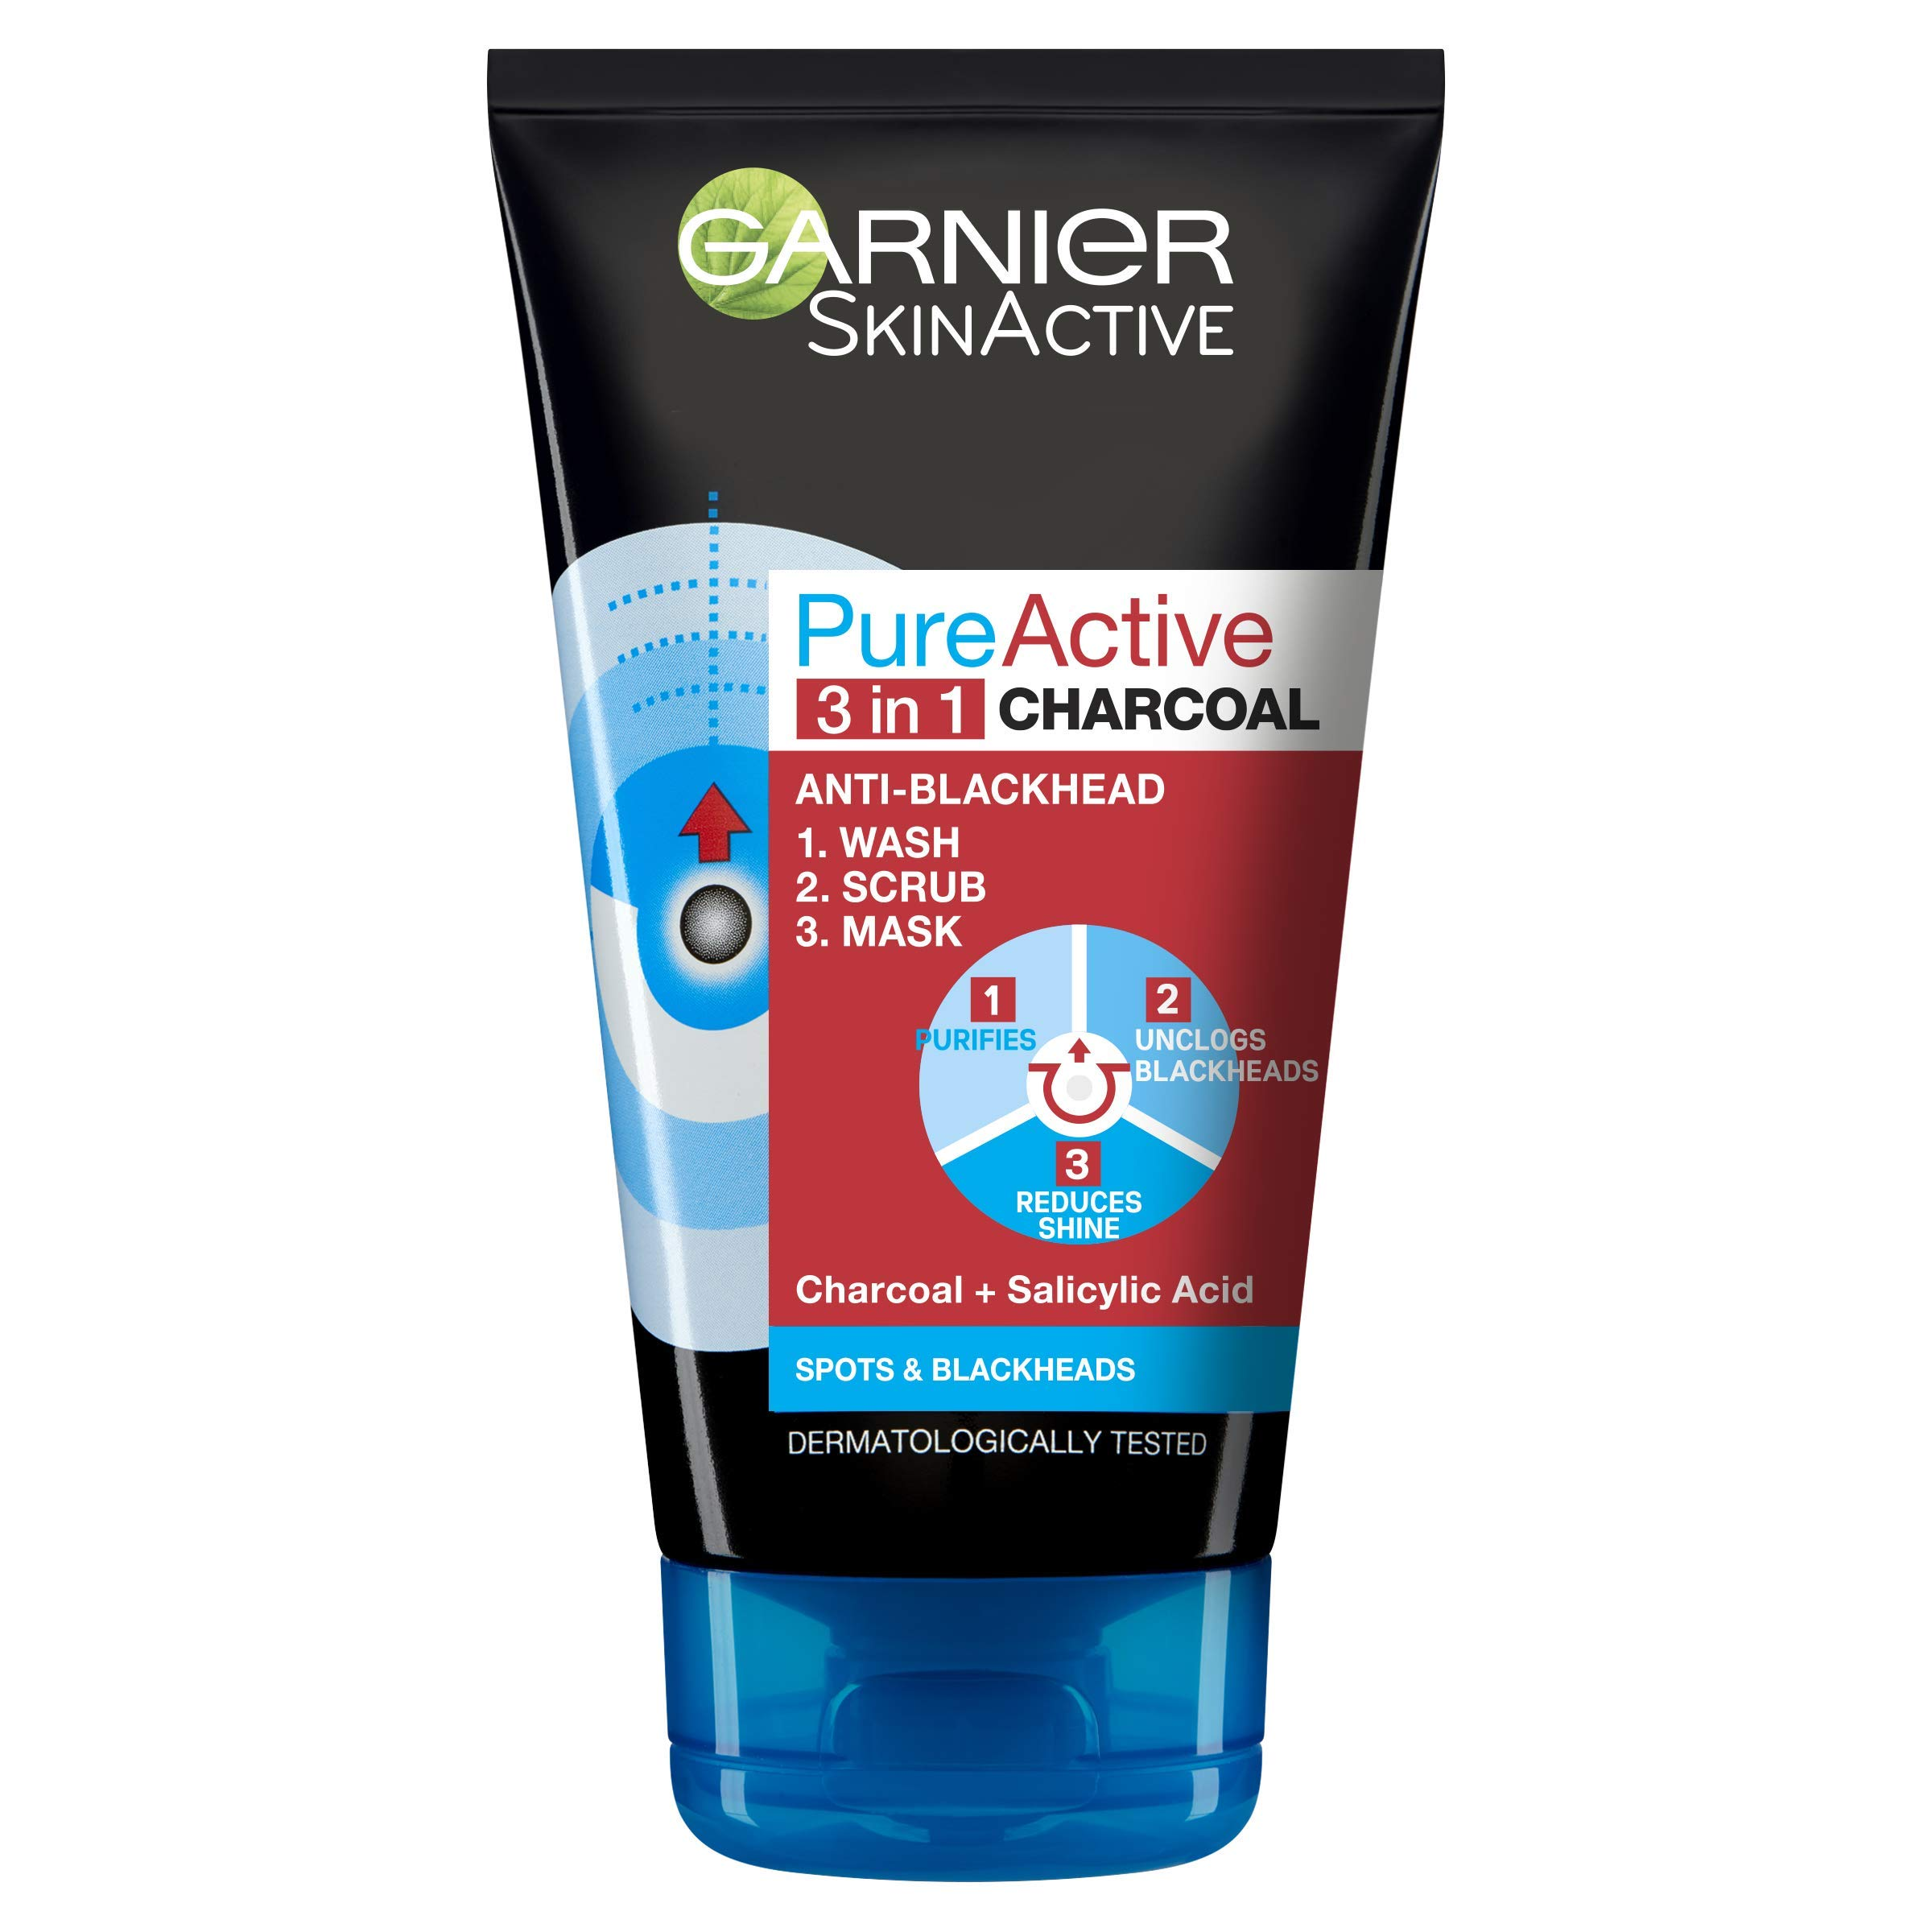 Garnier Skin Active Pure Active Intensive 3in1 Charcoal Anti-Blackhead, 150ml